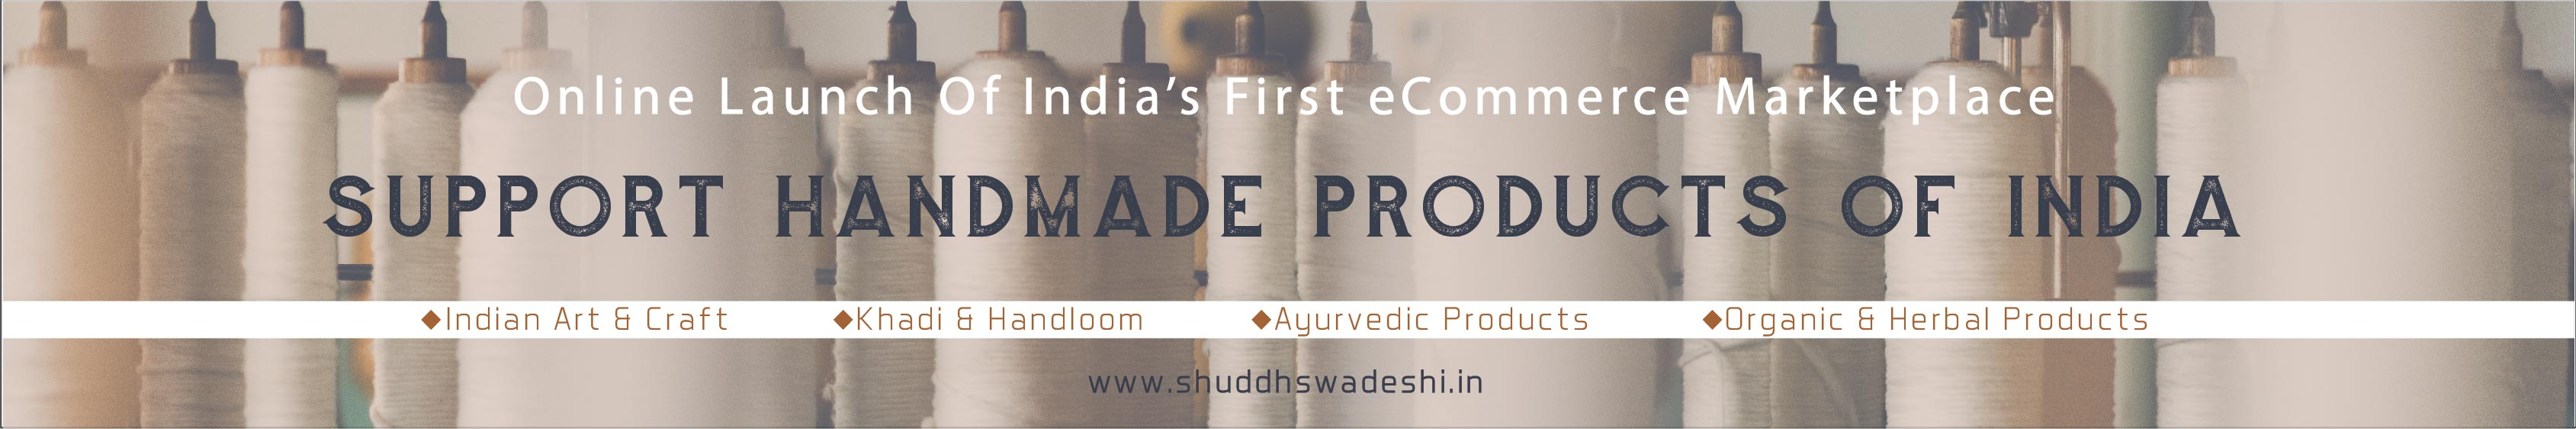 Online Shopping Site Exclusive For Swadeshi Products Organic Herbal